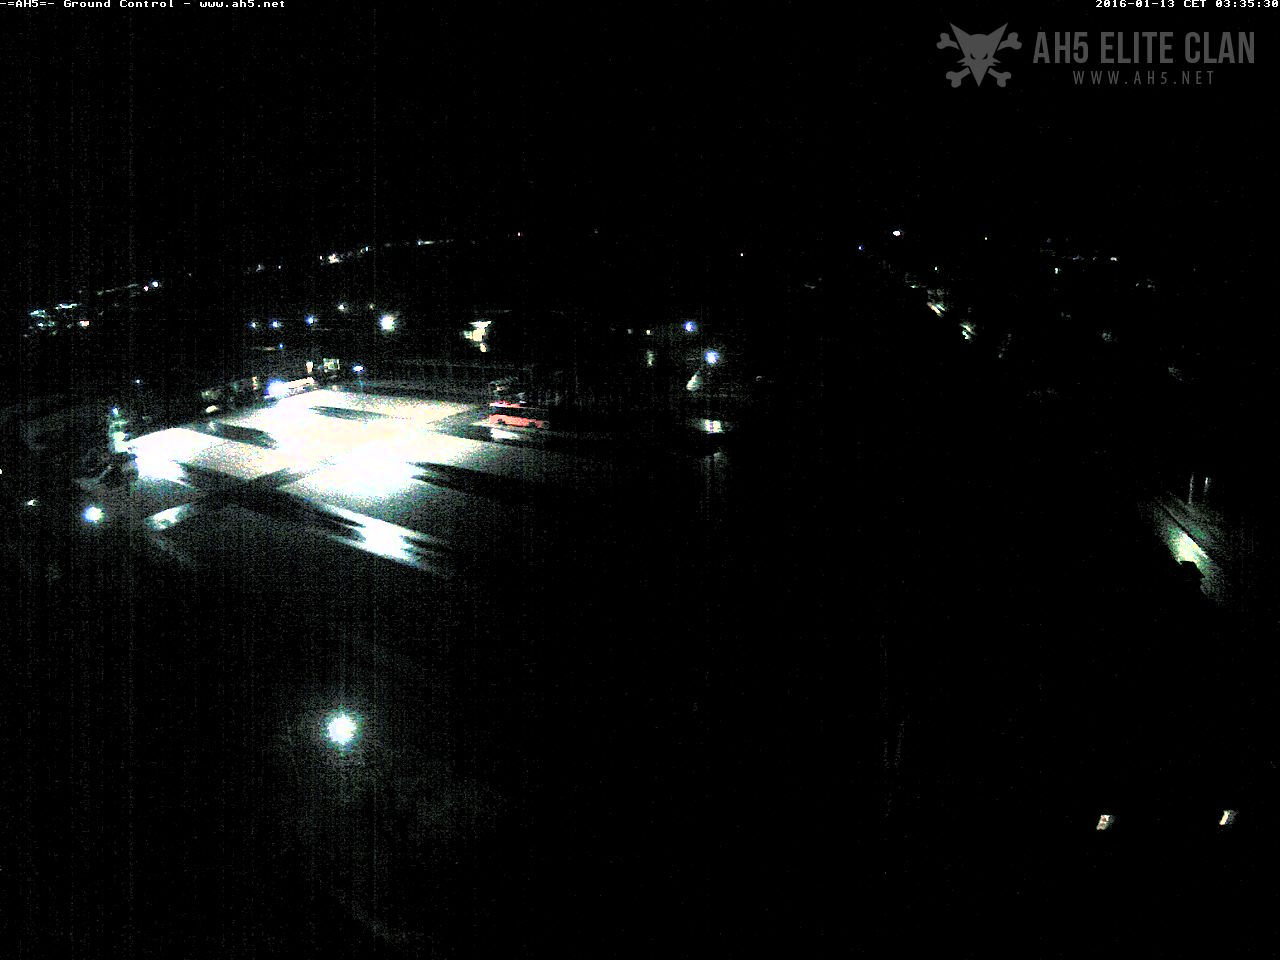 Webcam Bad Arolsen